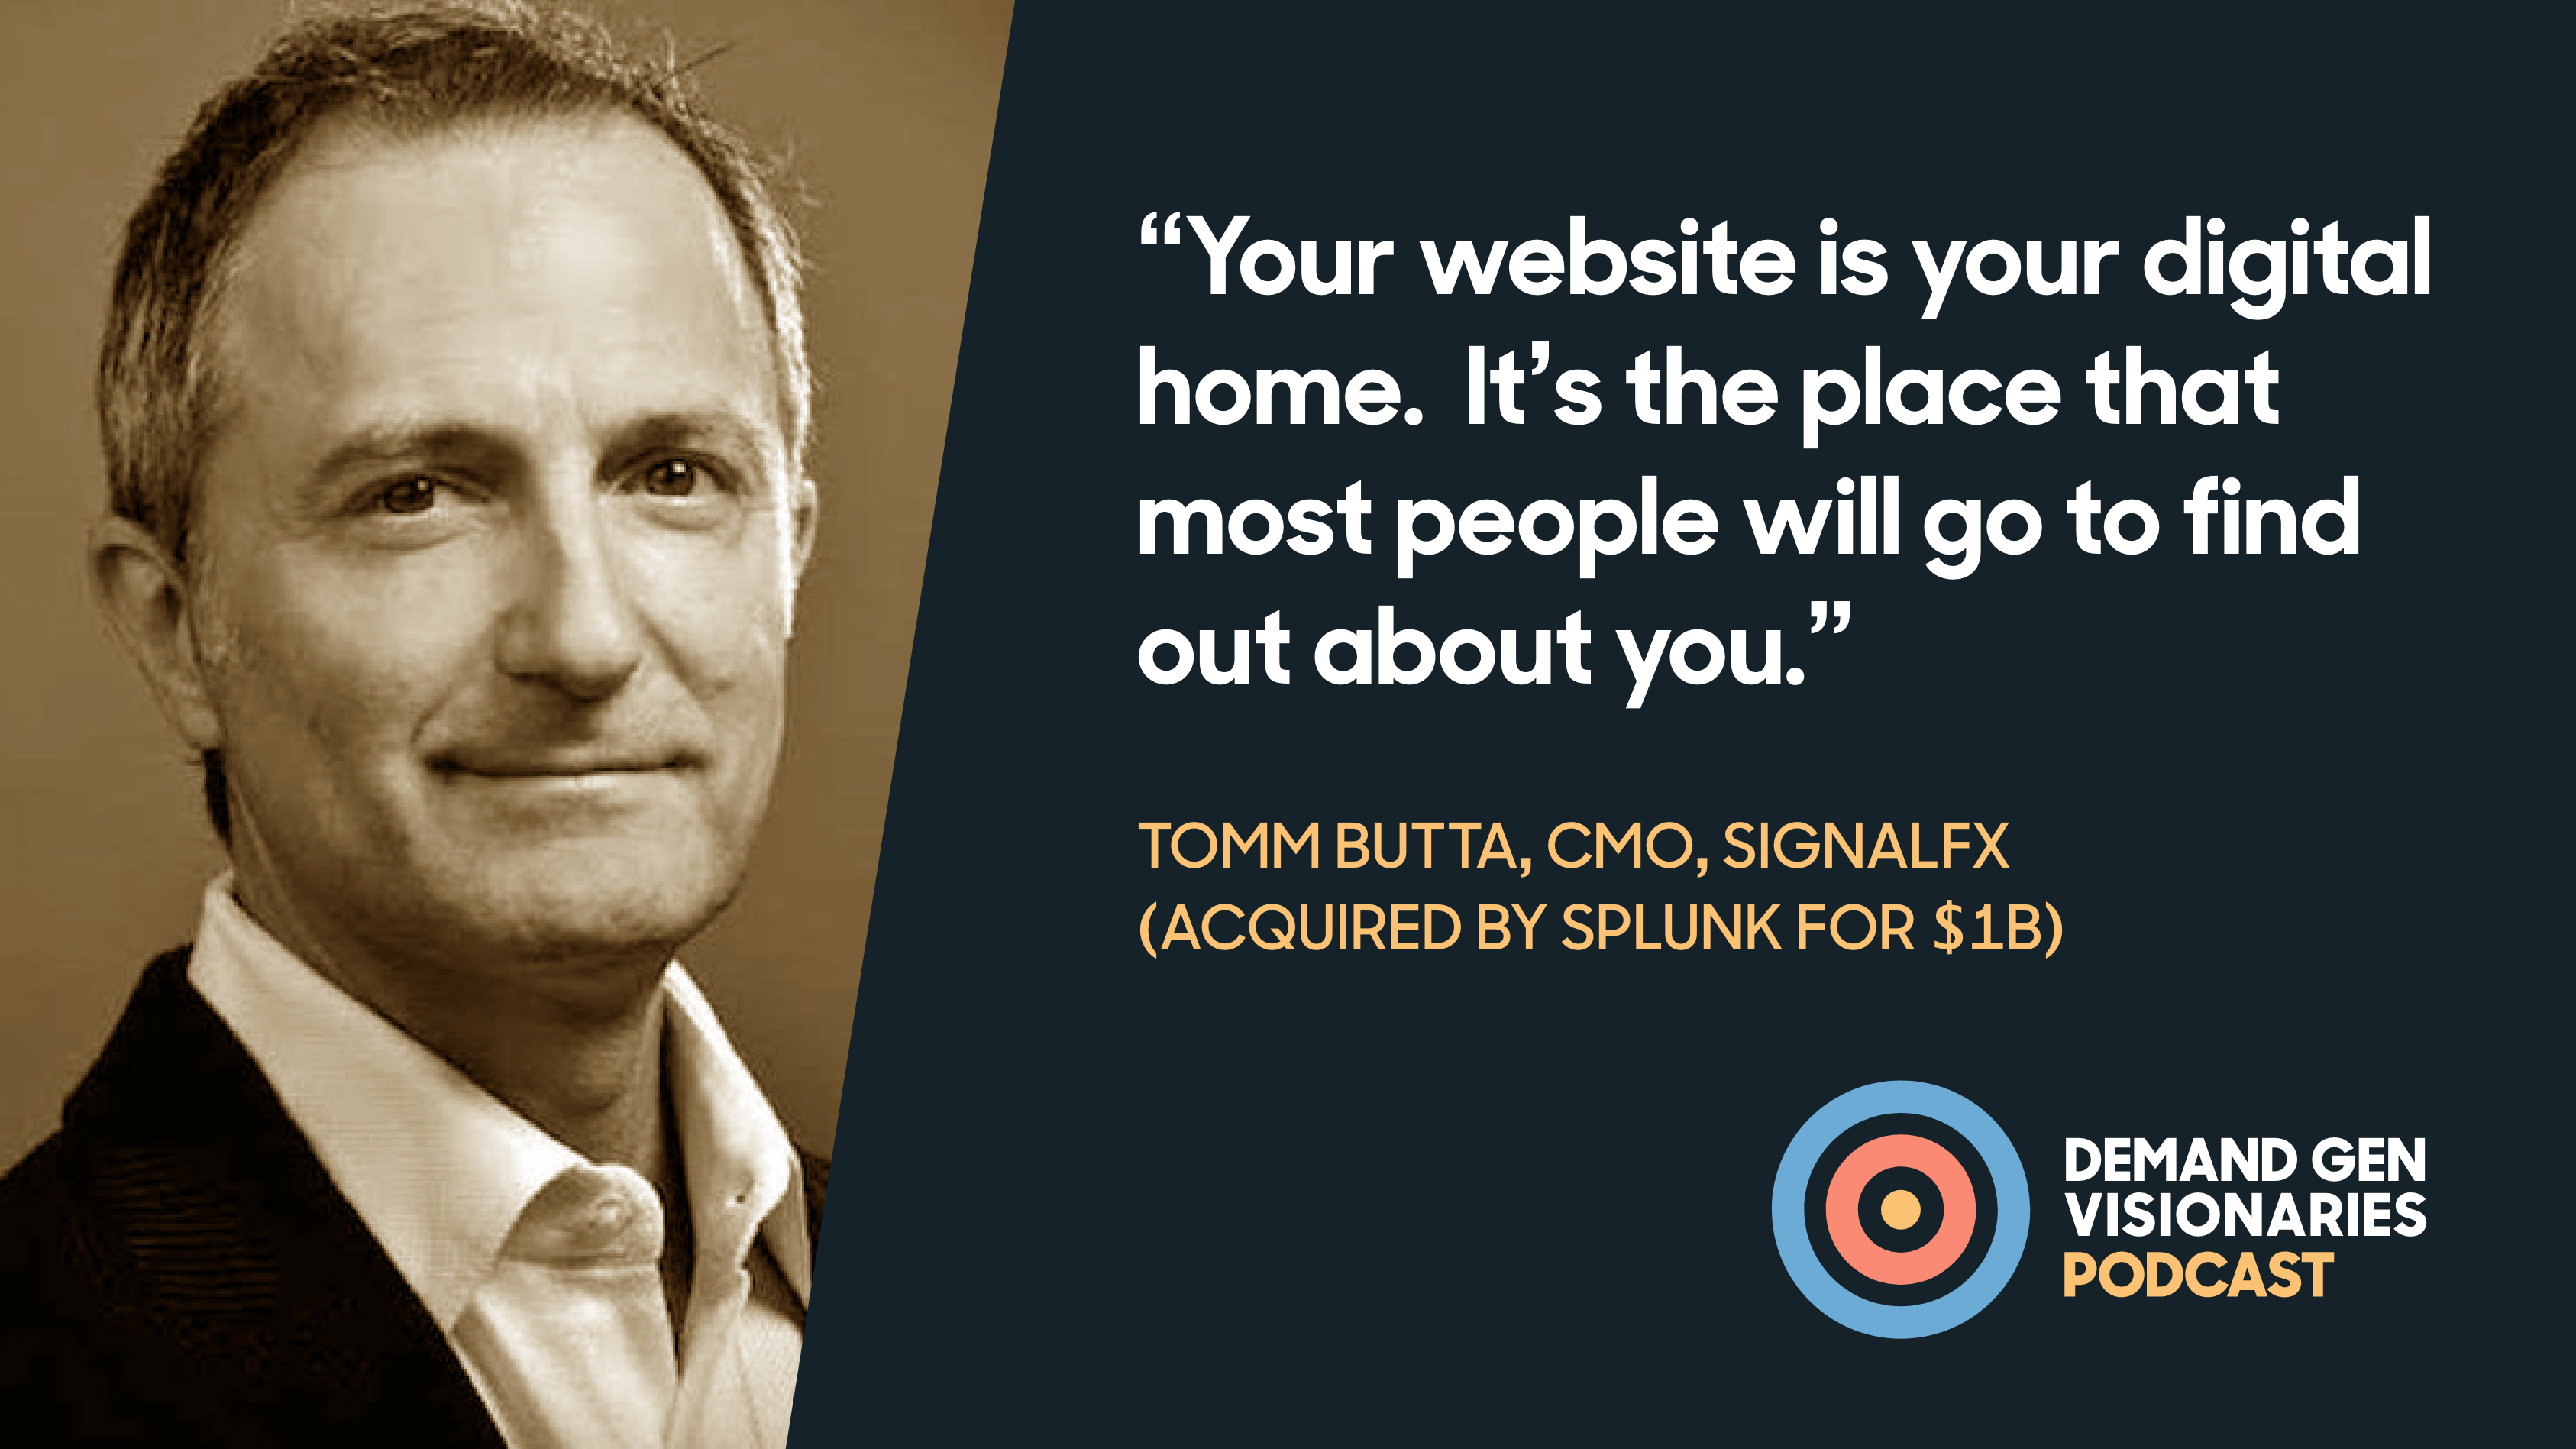 Tom Butta, CMO of SignalFX (Now Splunk) sits down with Qualified.com for the Demand Gen Visionaries Podcast